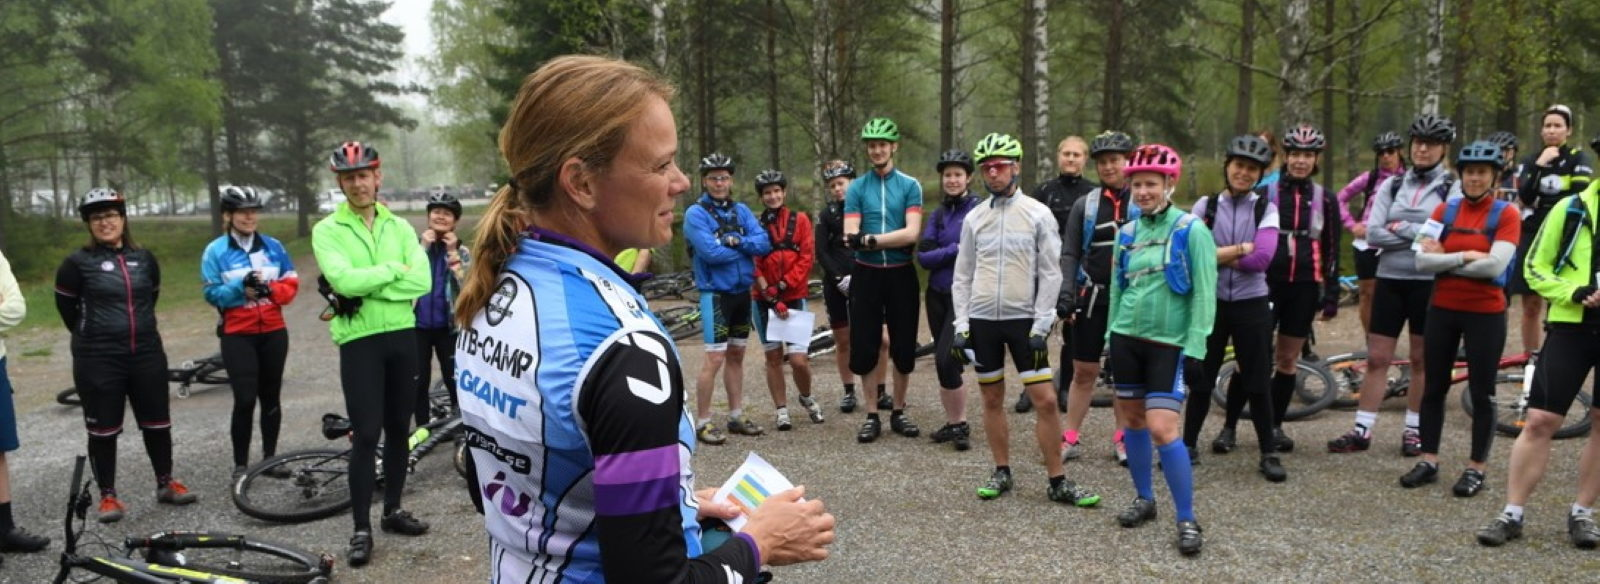 Course Bicycle guiding in practice